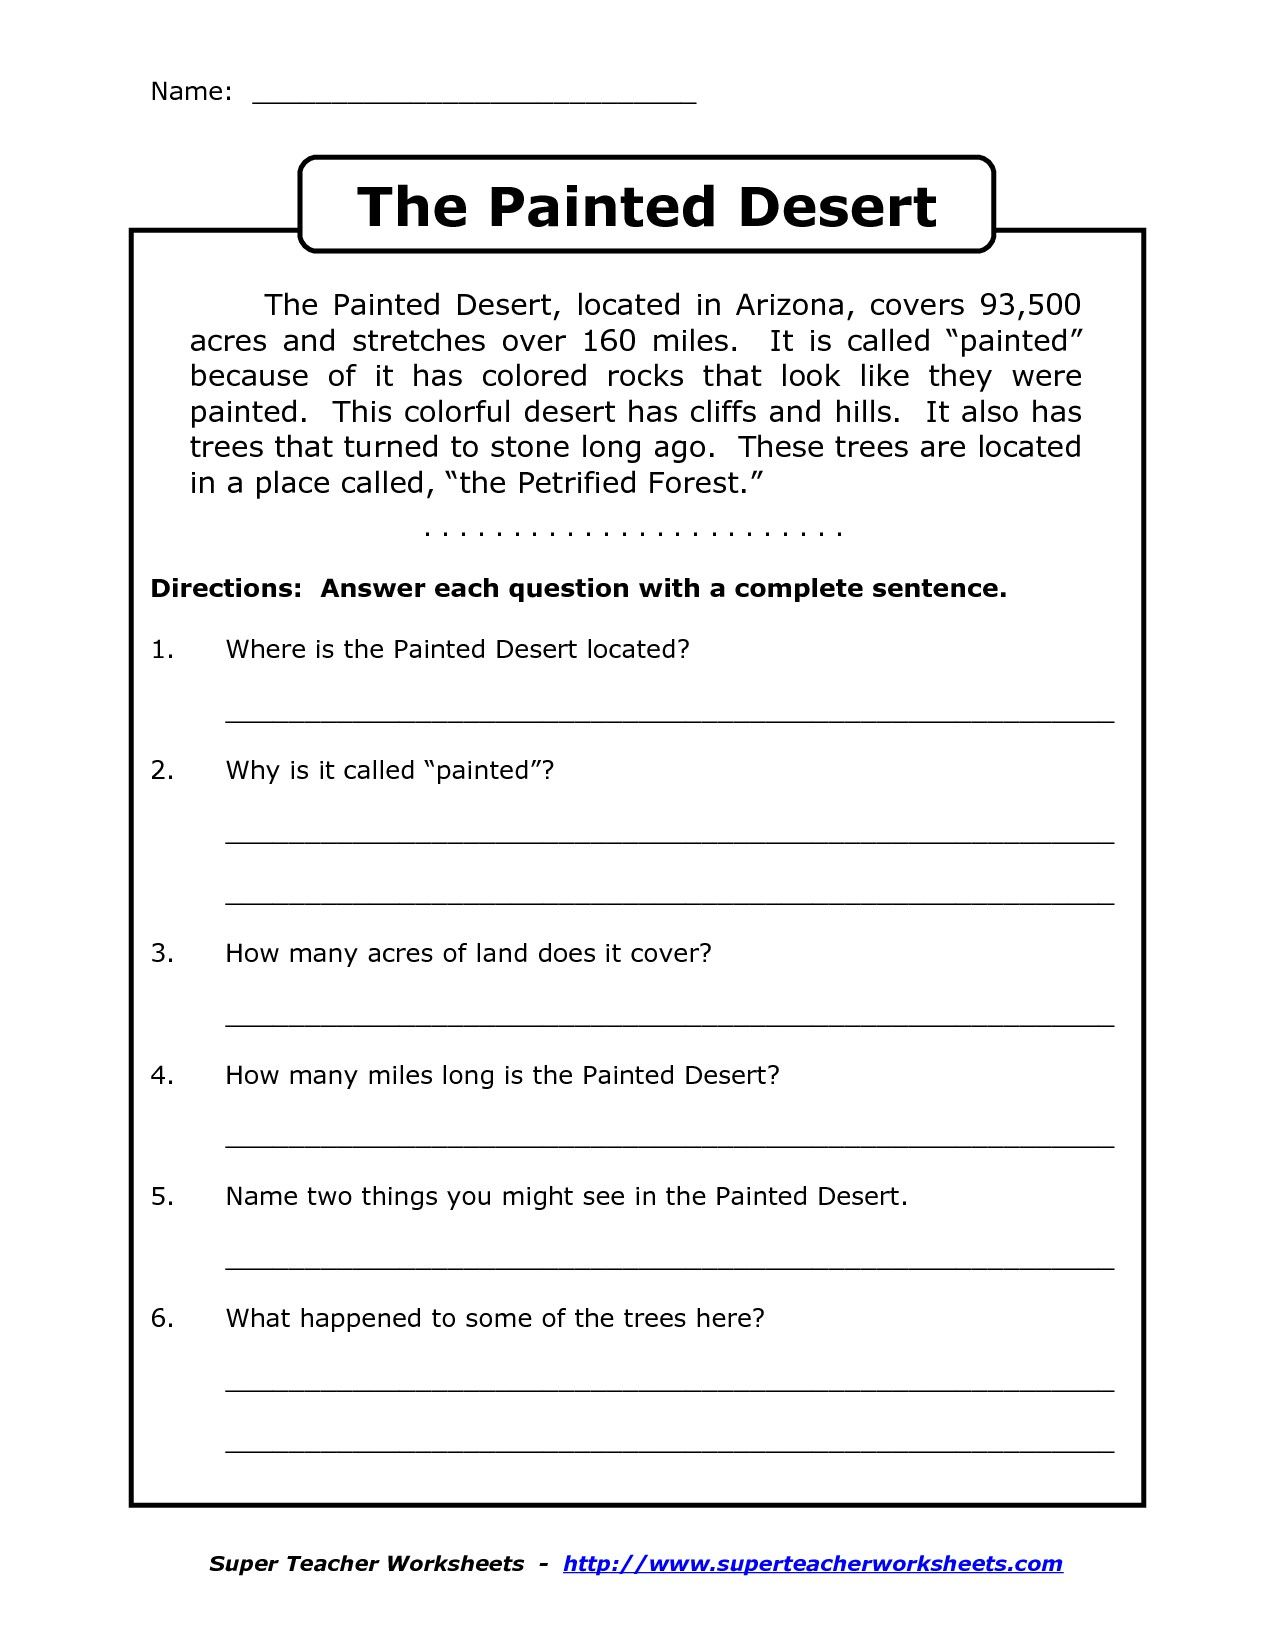 Worksheets Free Comprehension Worksheets comprehension worksheet for 1st grade y2p3 the painted desert arizona